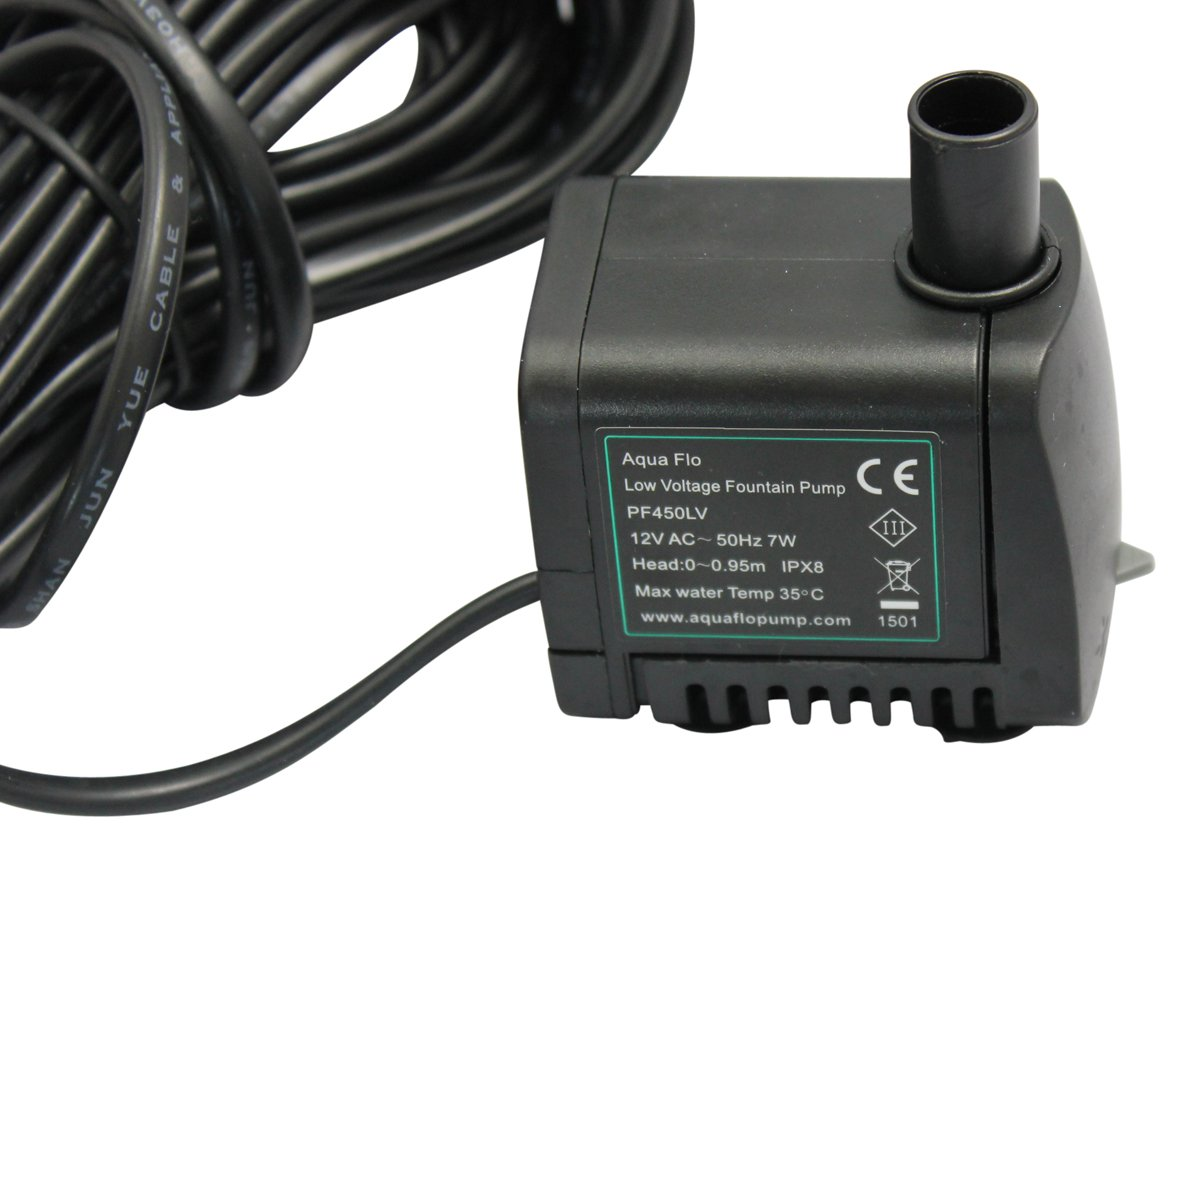 450 Lph Replacement Water Feature Pump With Light Offshoot Low Wiring 12v Voltage Garden Outdoors